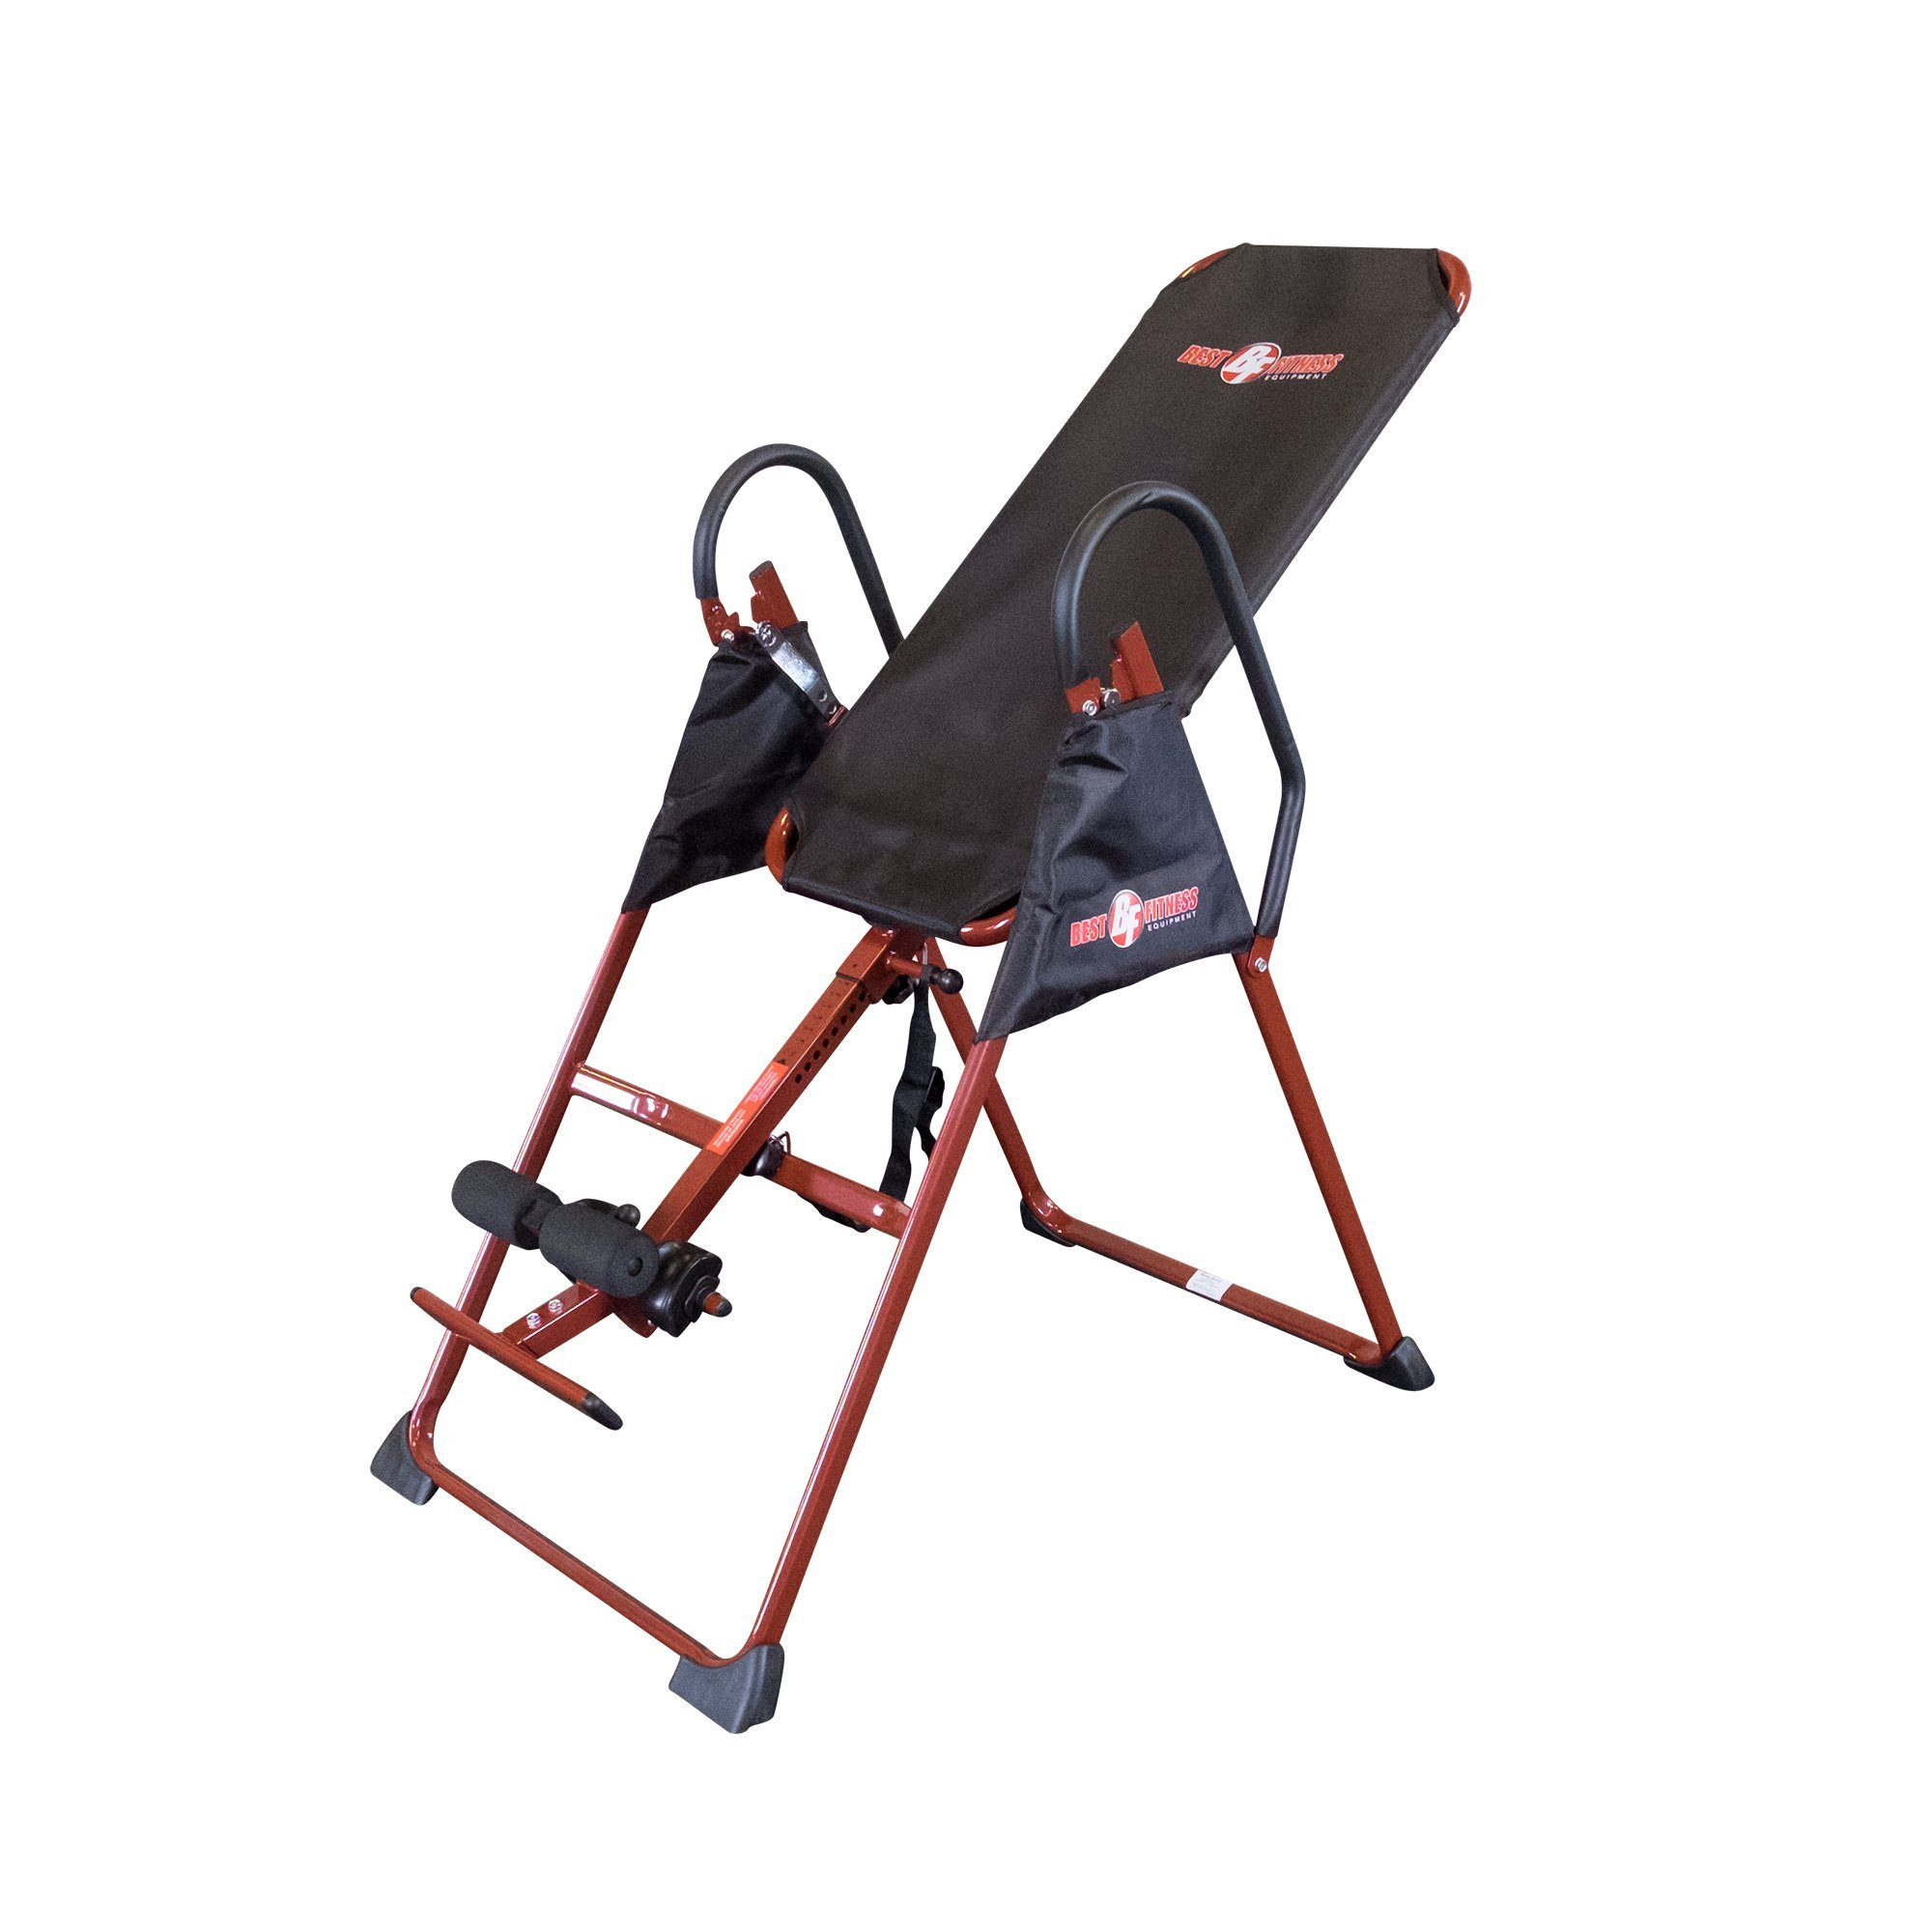 Best Fitness BFINVER10 Inversion Therapy Table by Best Fitness